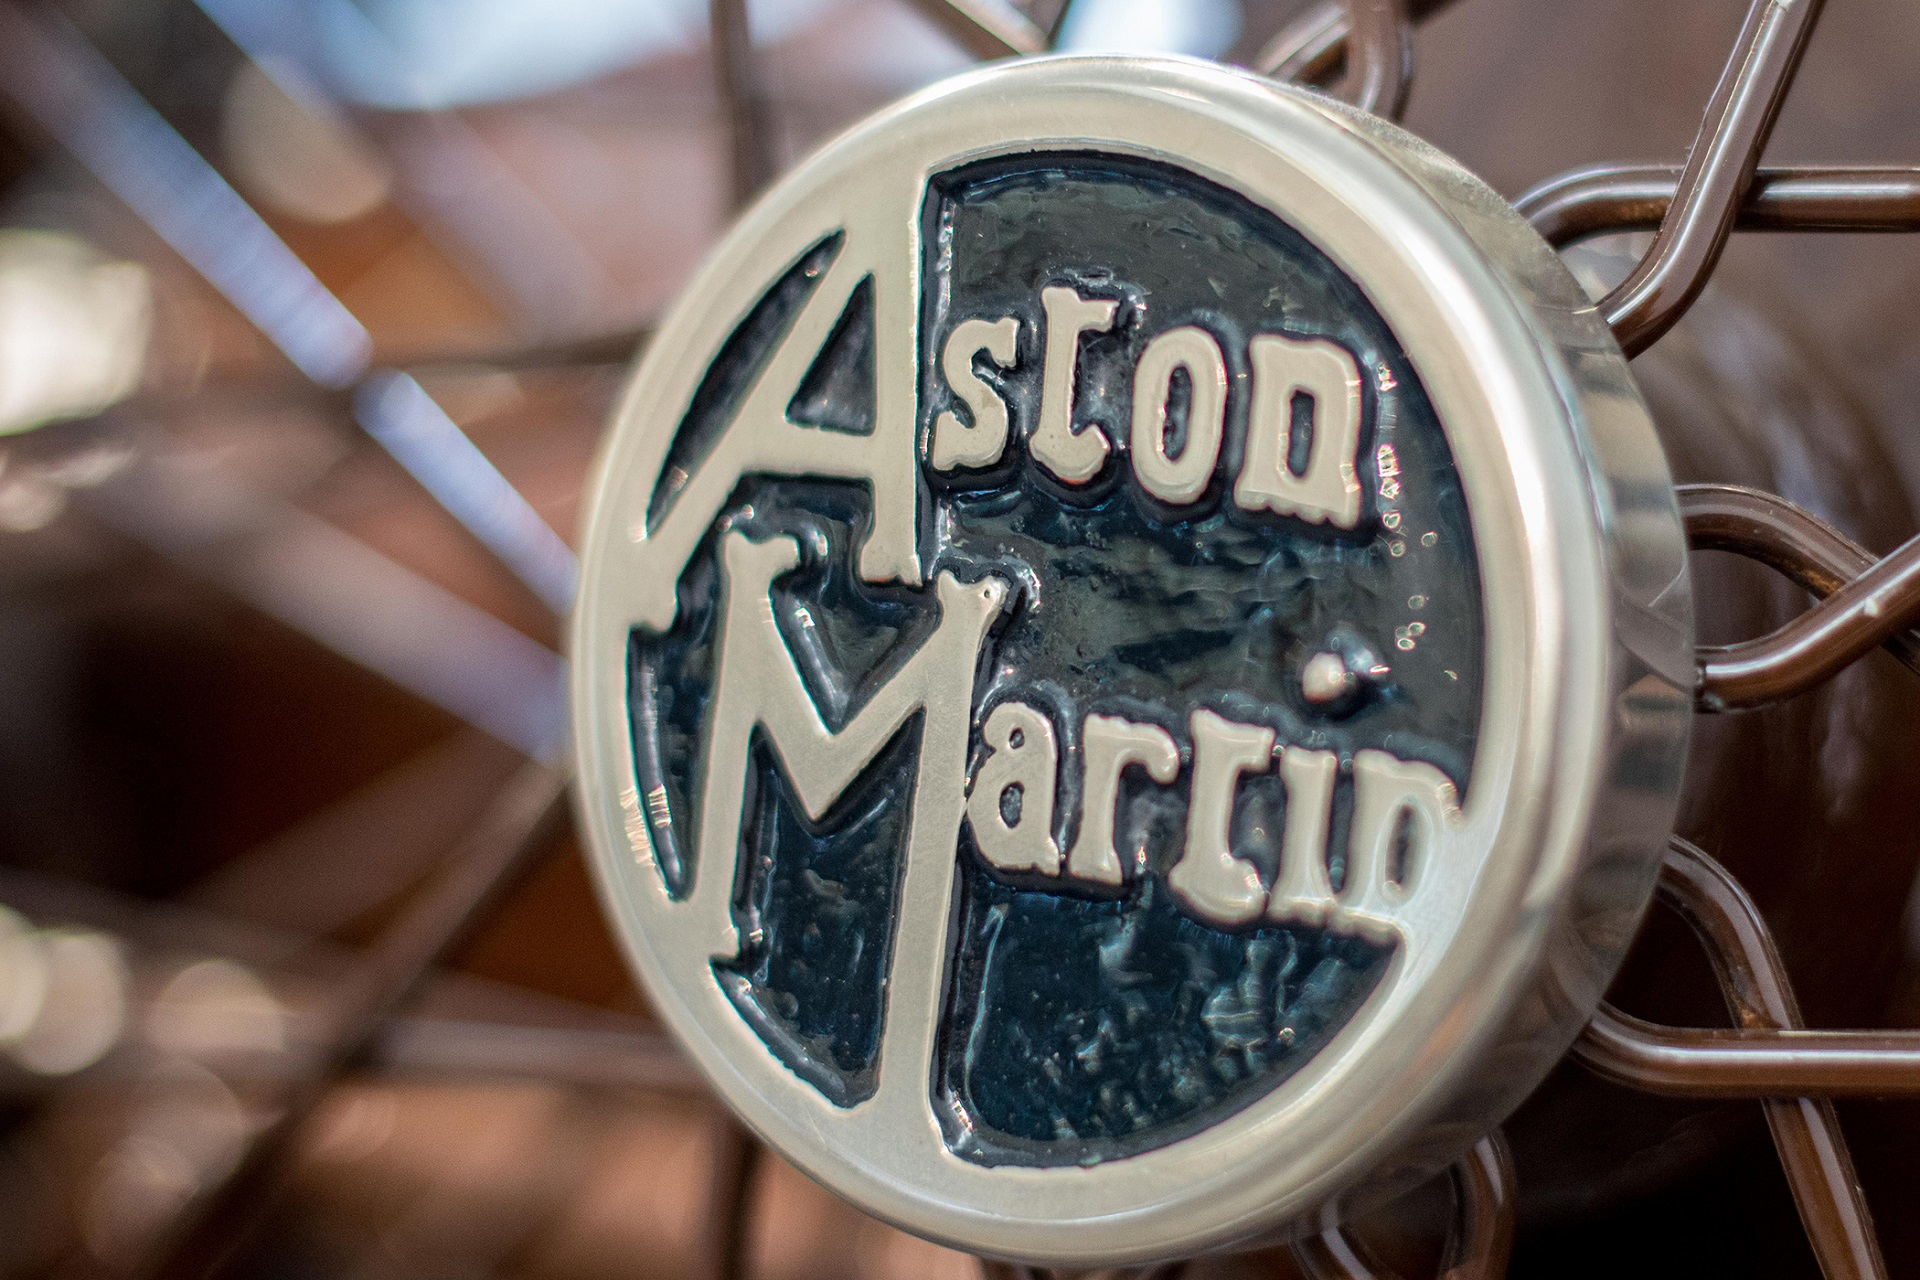 Heritage Aston Martin badge